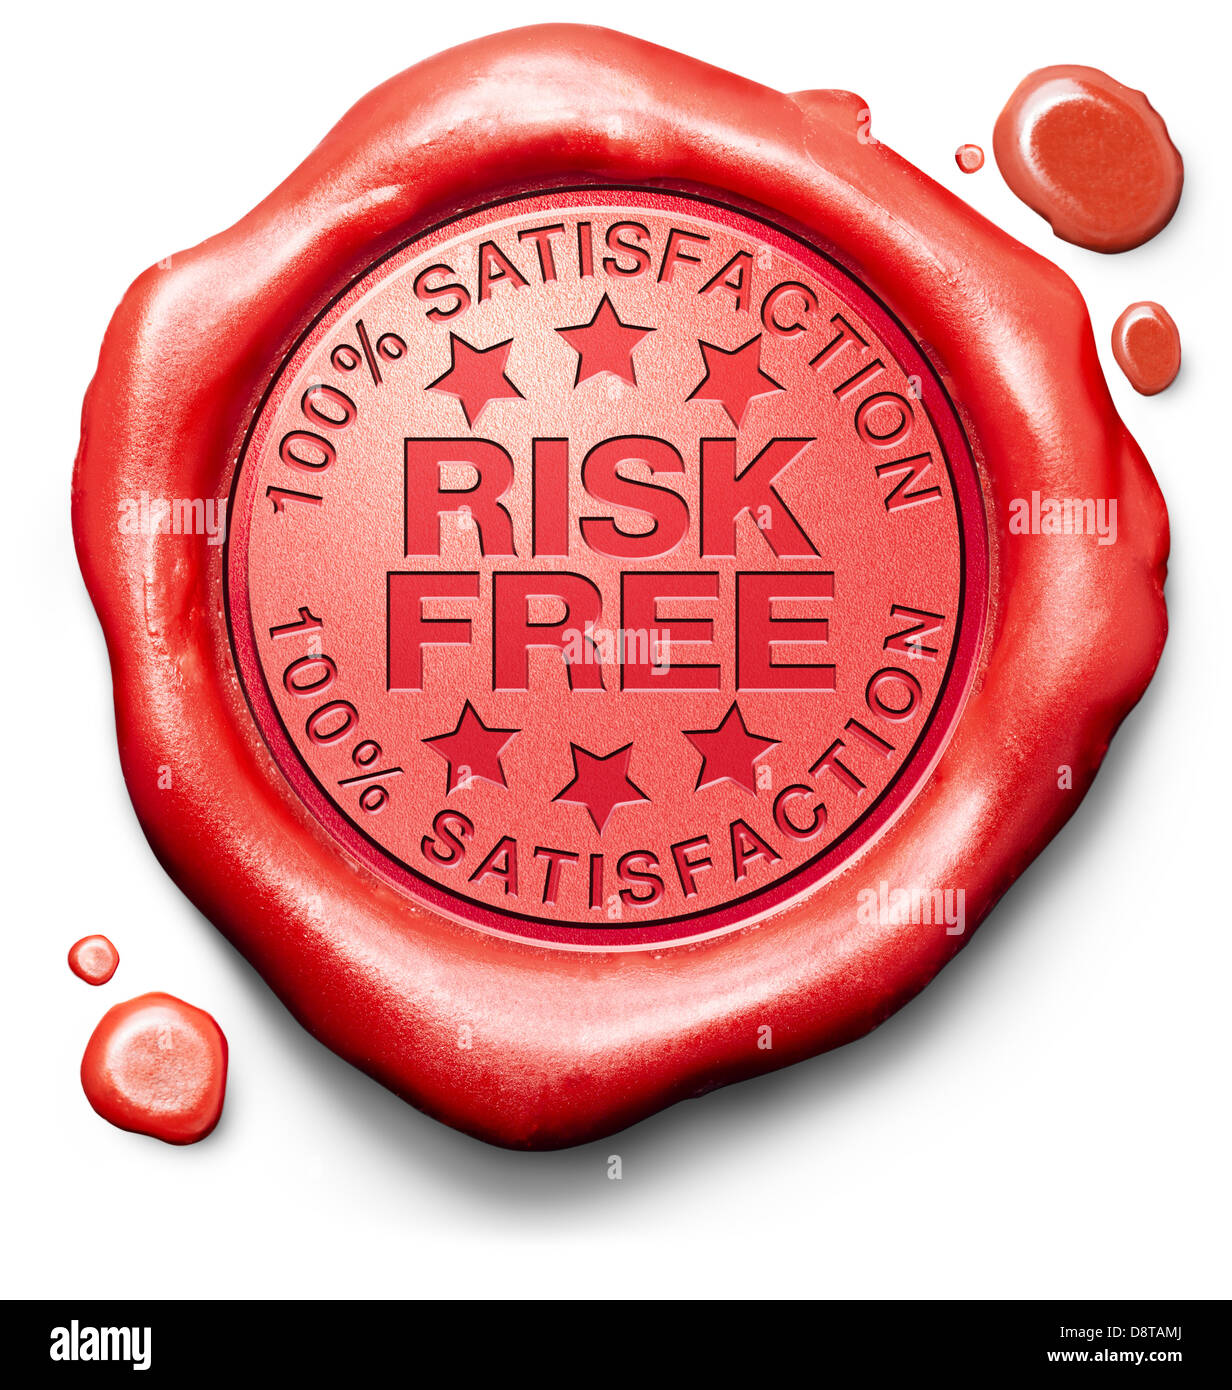 risk free 100% satisfaction product quality control label red wax seal stamp - Stock Image